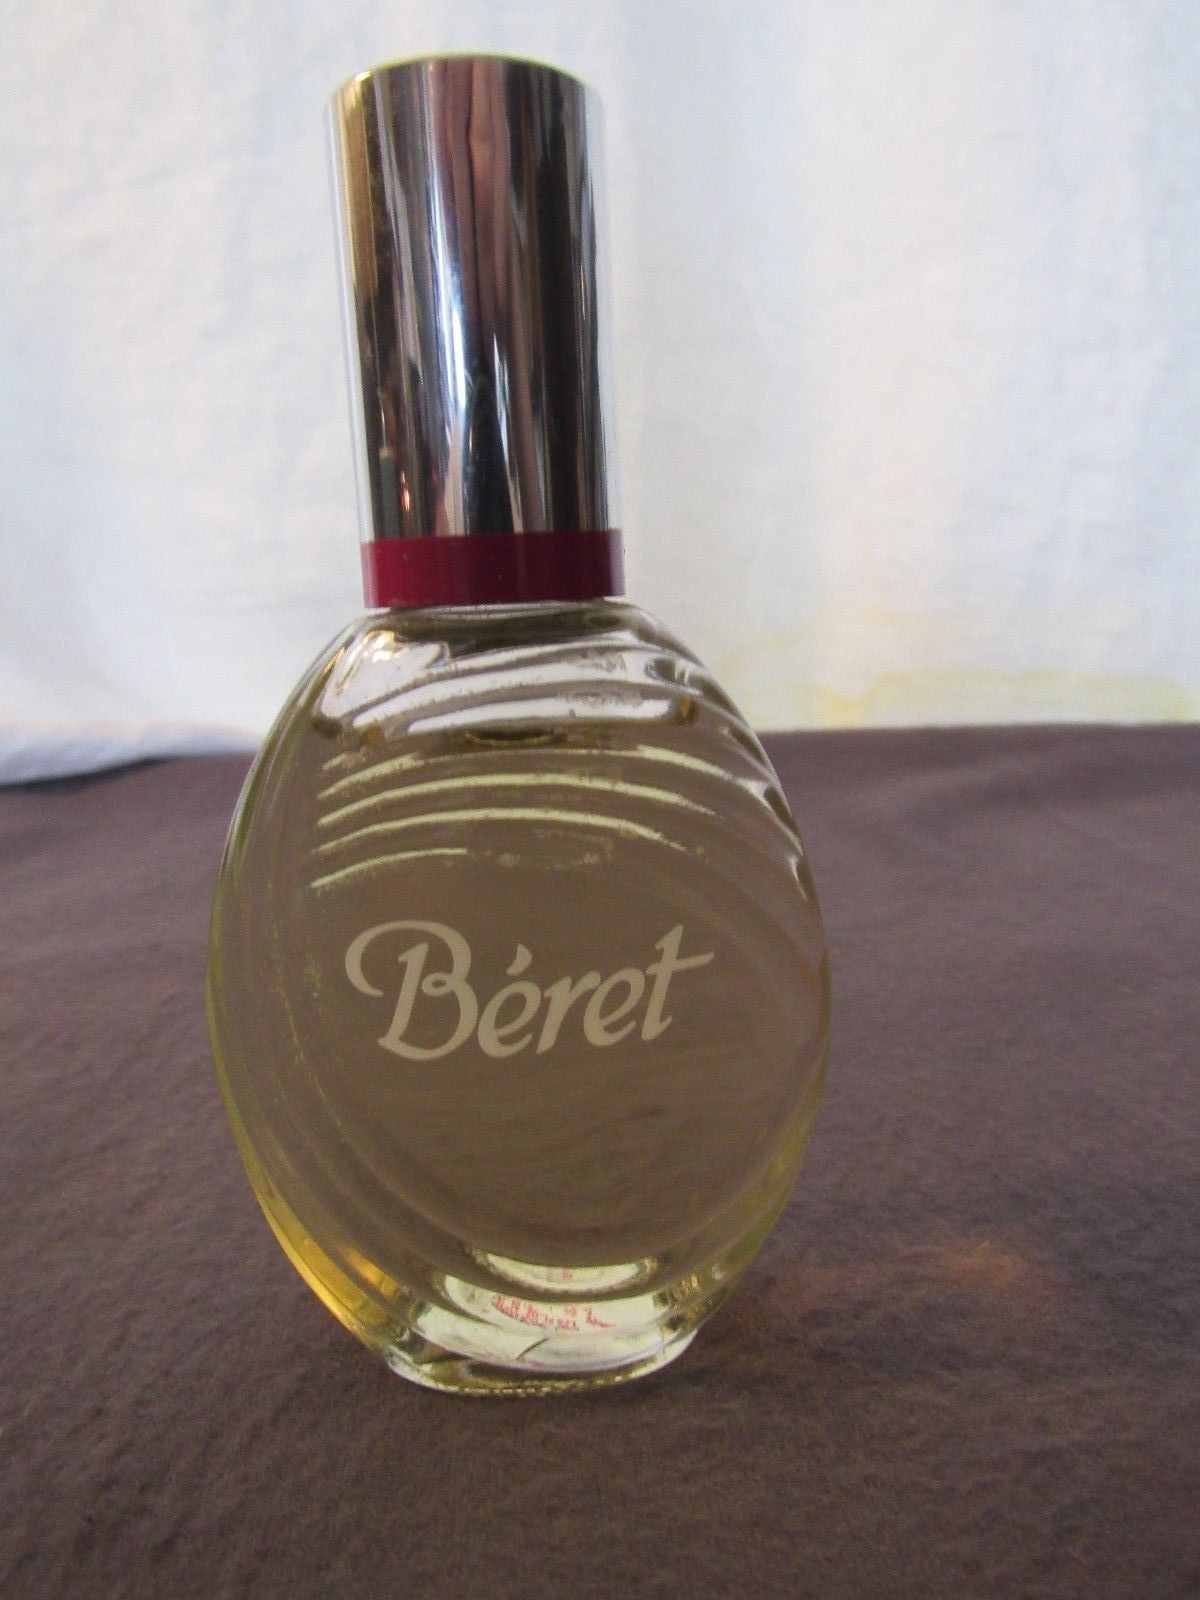 Beret Eau de Cologne Bottle 1.75